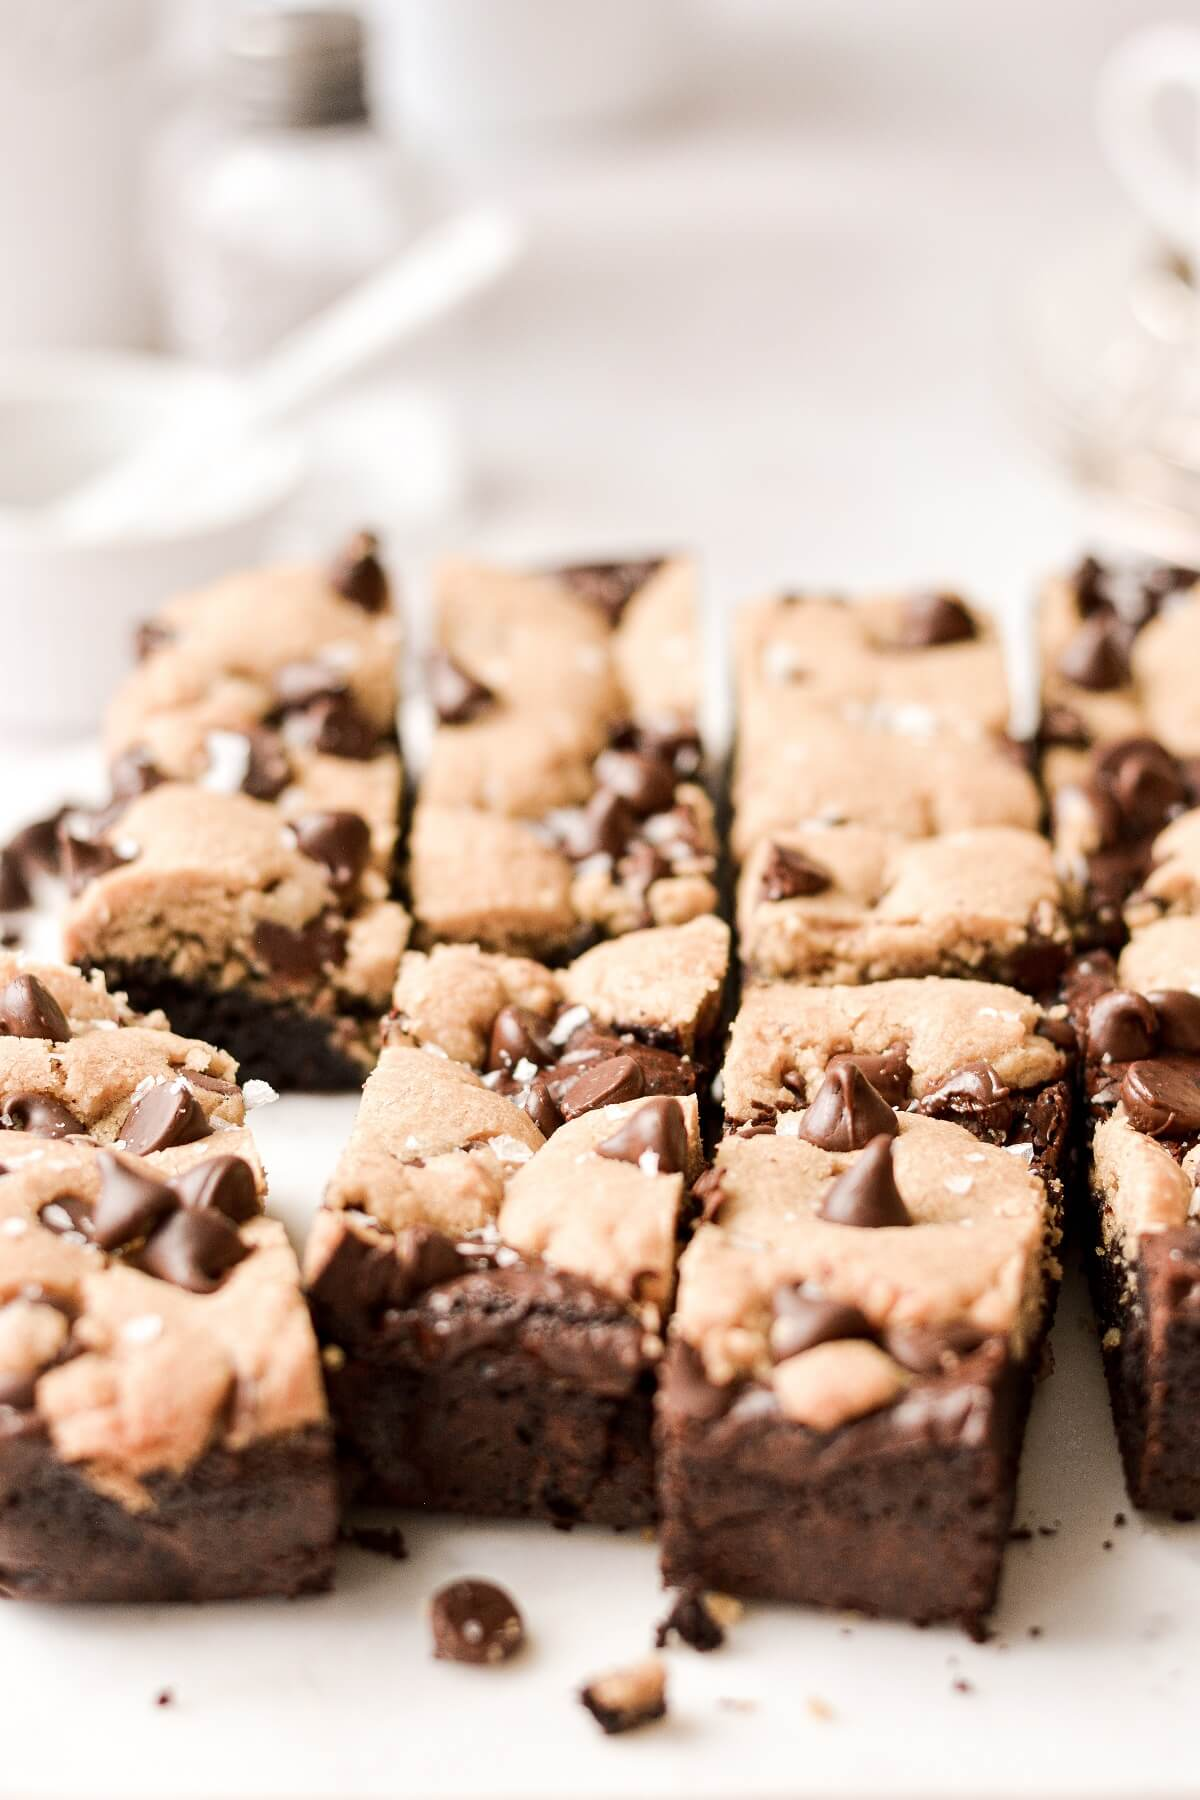 Chocolate chip cookie brownies arranged on a white marble board.